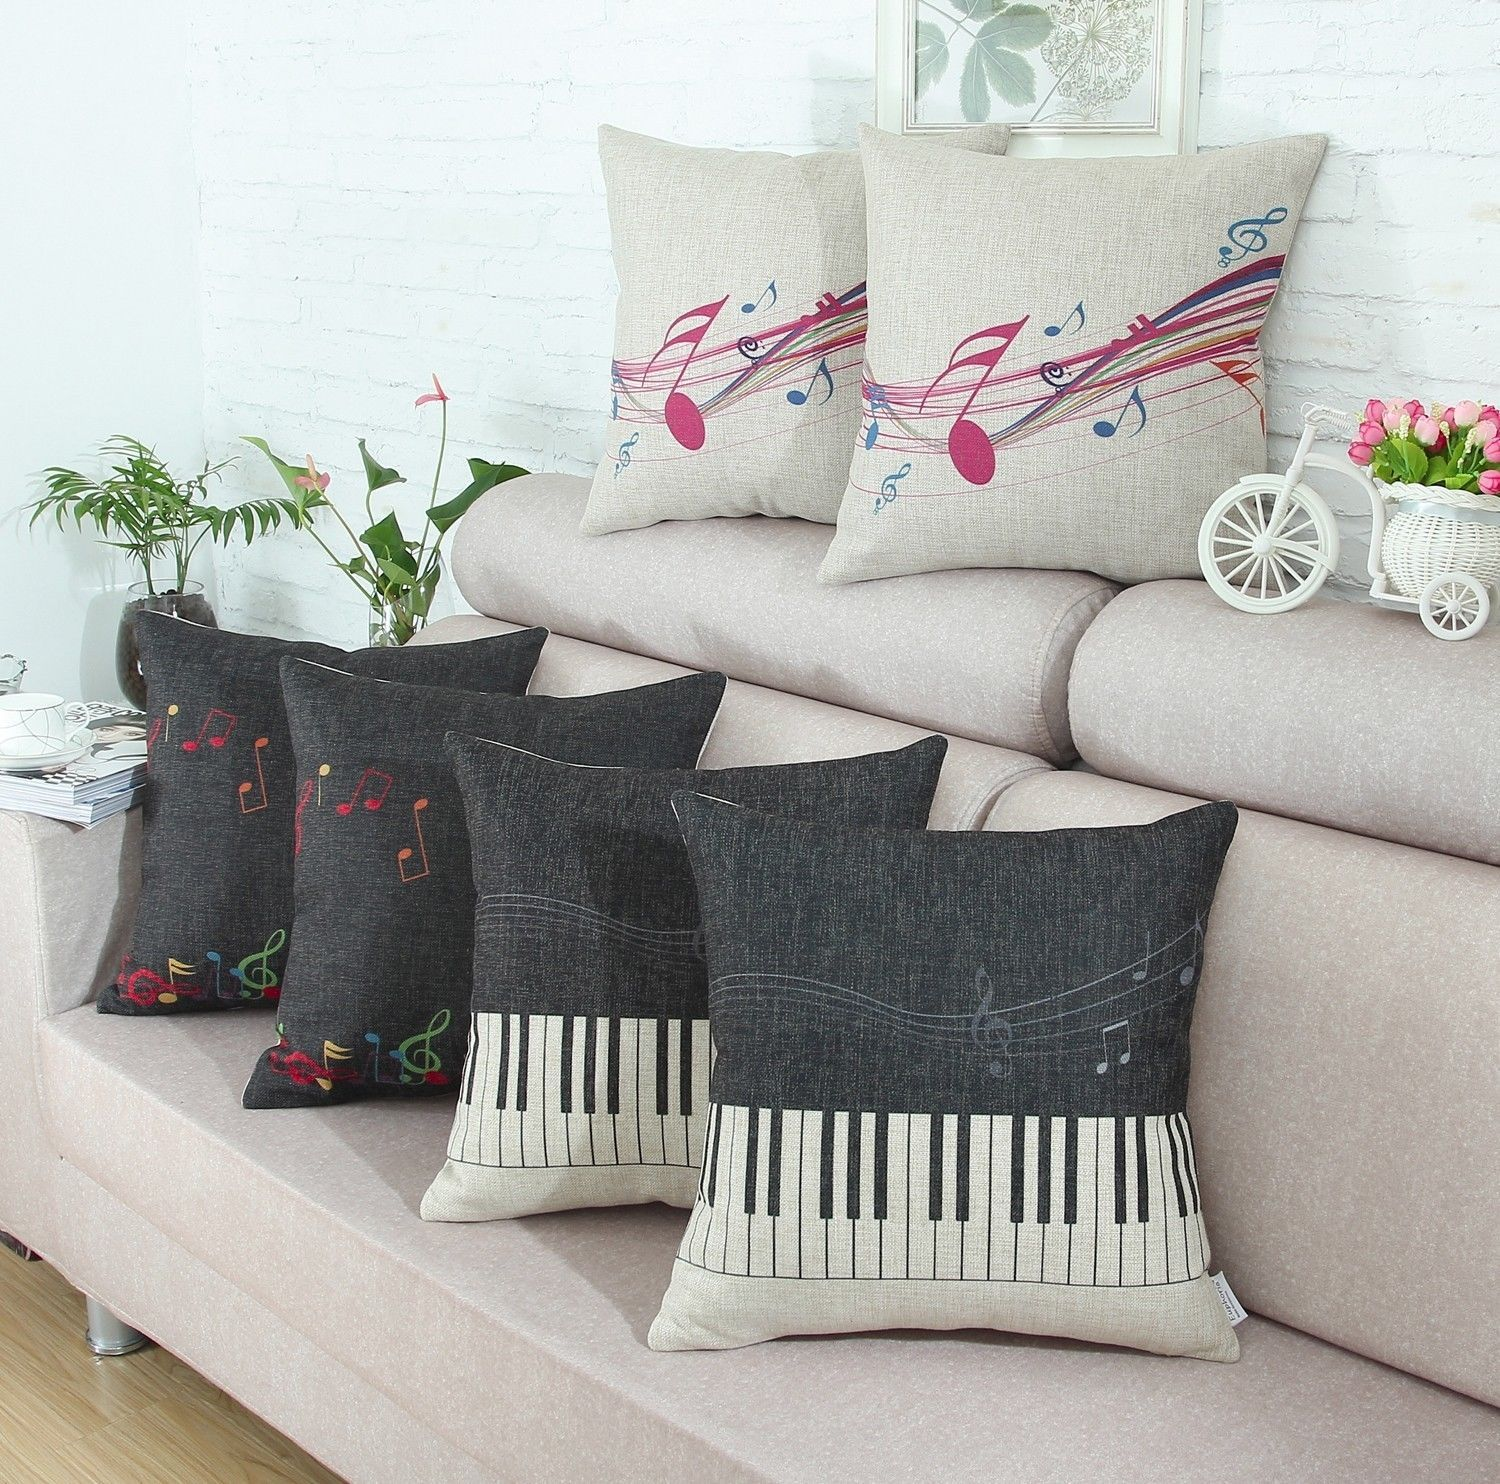 Details about Euphoria Cushion Cover Pillows Shell Music Theme Note